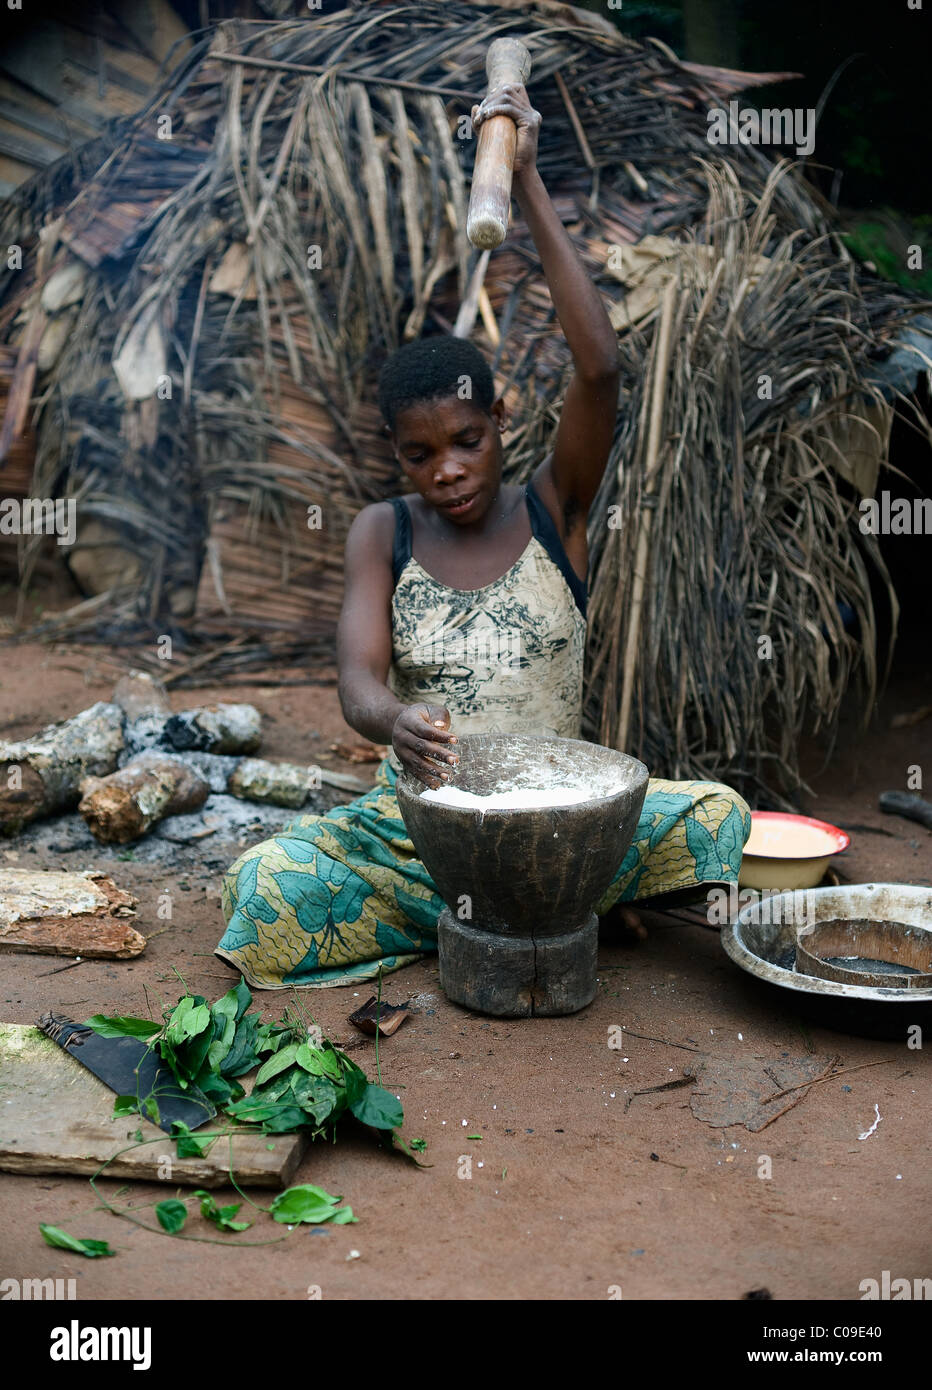 Baka pygmy WOMAN AT WORK - Stock Image